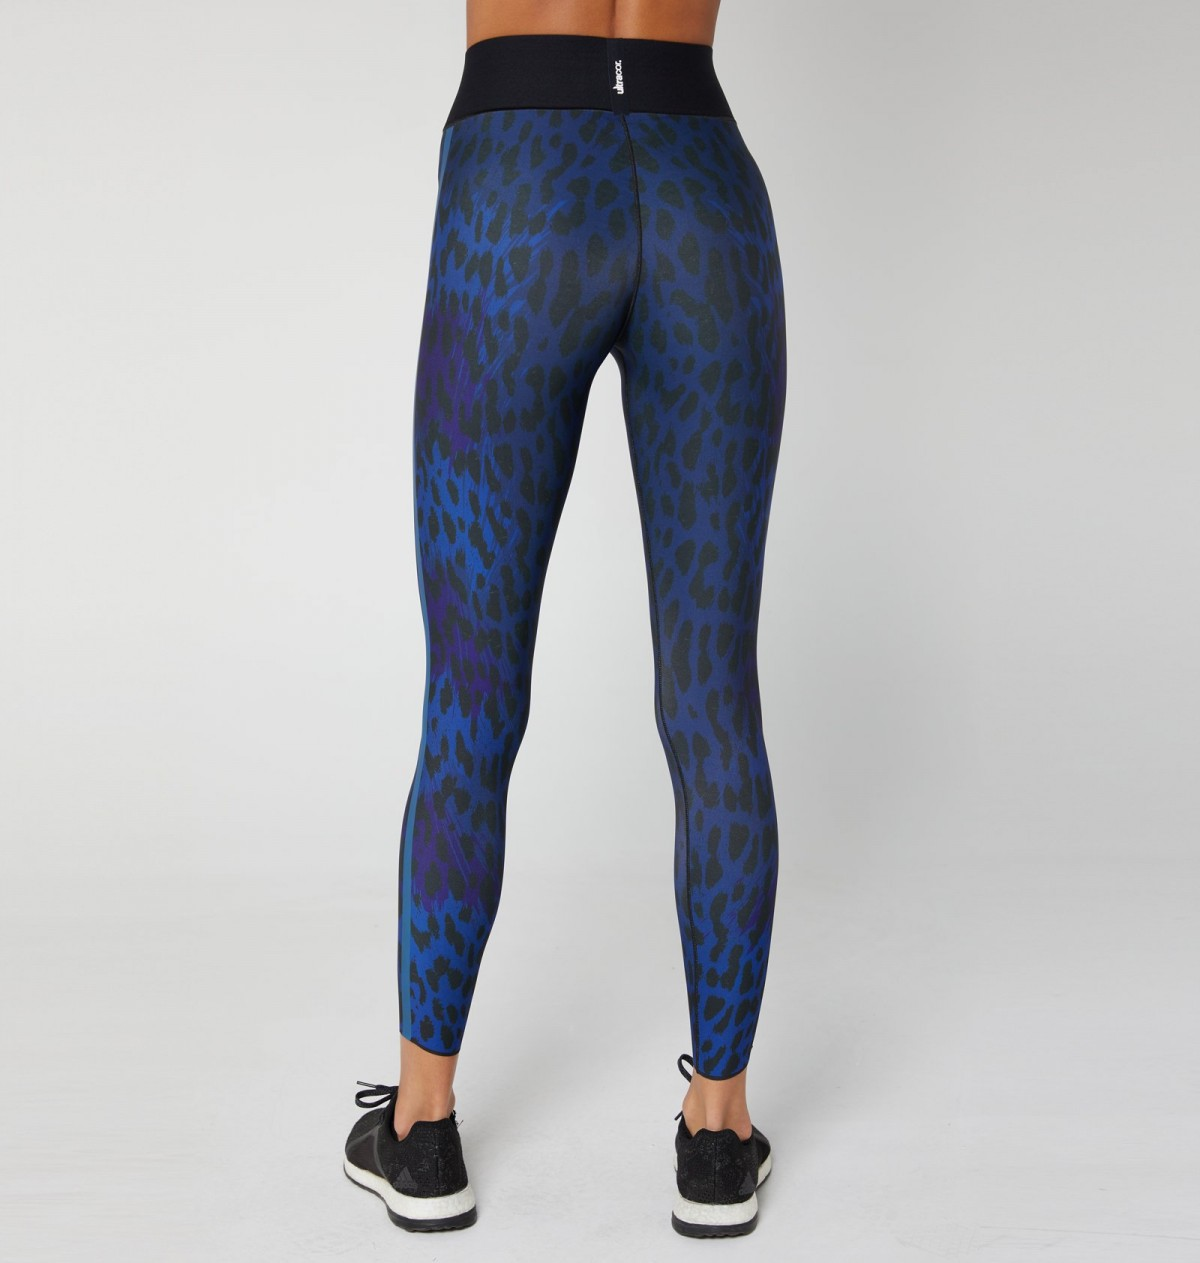 Cobalt Print and Blue Metal Ocelot Legging